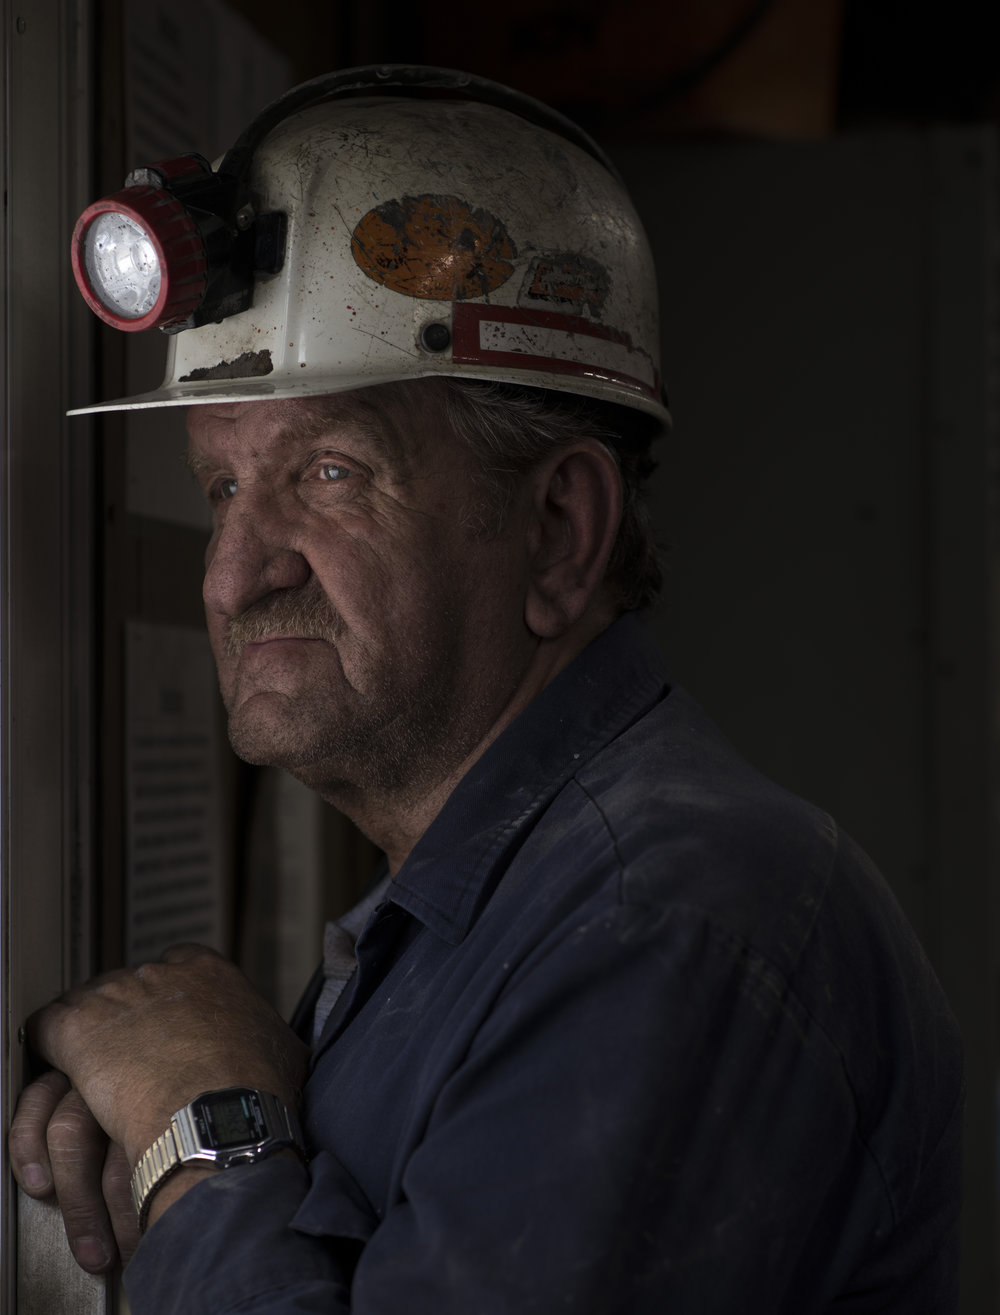 Superintendent David Gayhart, 61, of Dorton, Ky., patiently watches for the inspector and for his remaining miners to come out from underground at the office of Cheyenne Mining in Tram, Floyd County, Kentucky, on August 7, 2018. Gayhart has been a miner for roughly 41 years.